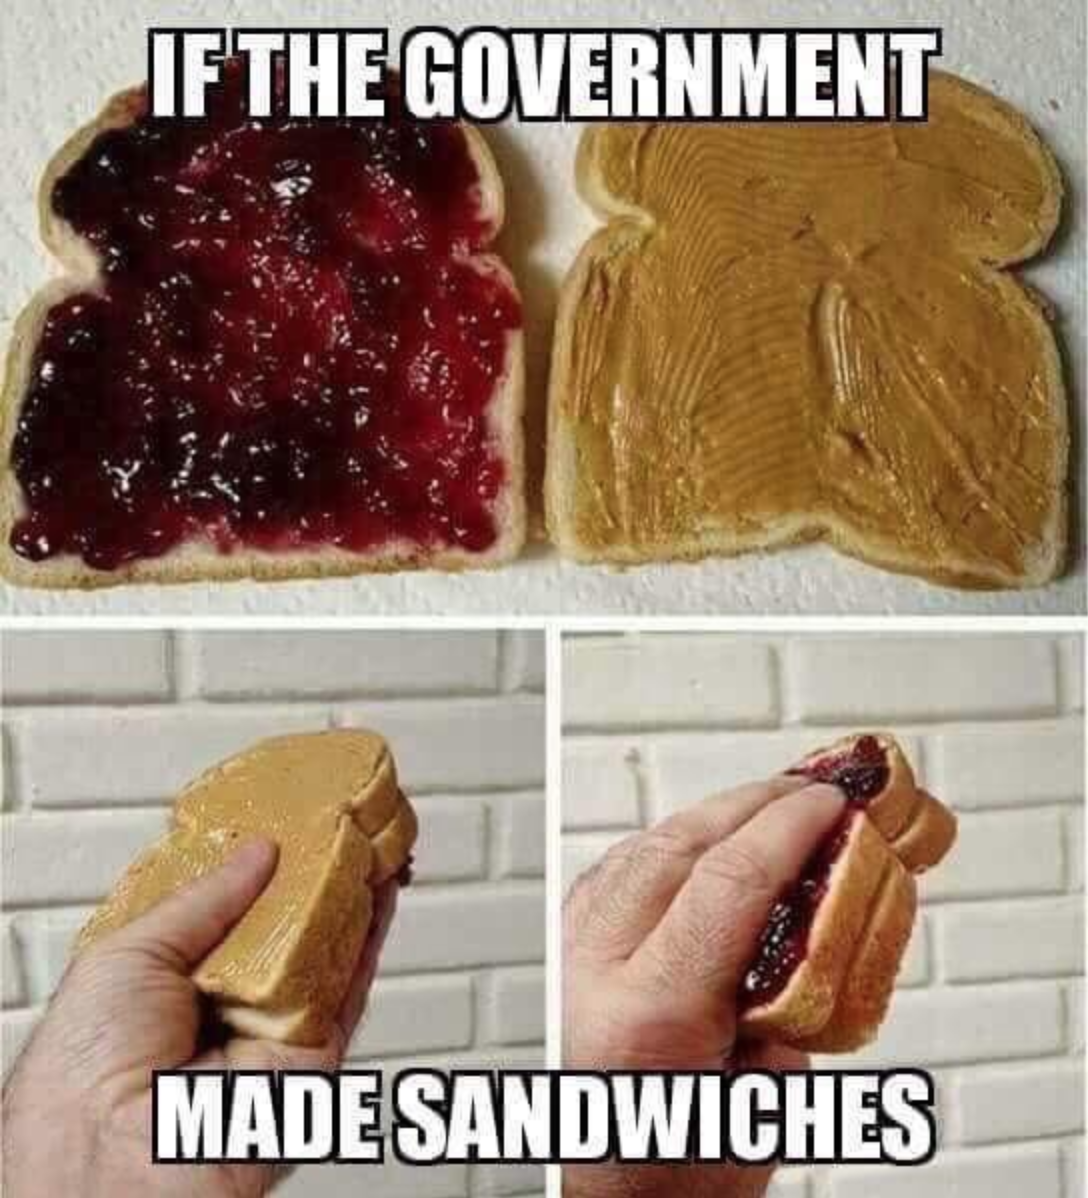 Government-sandwiches-meme